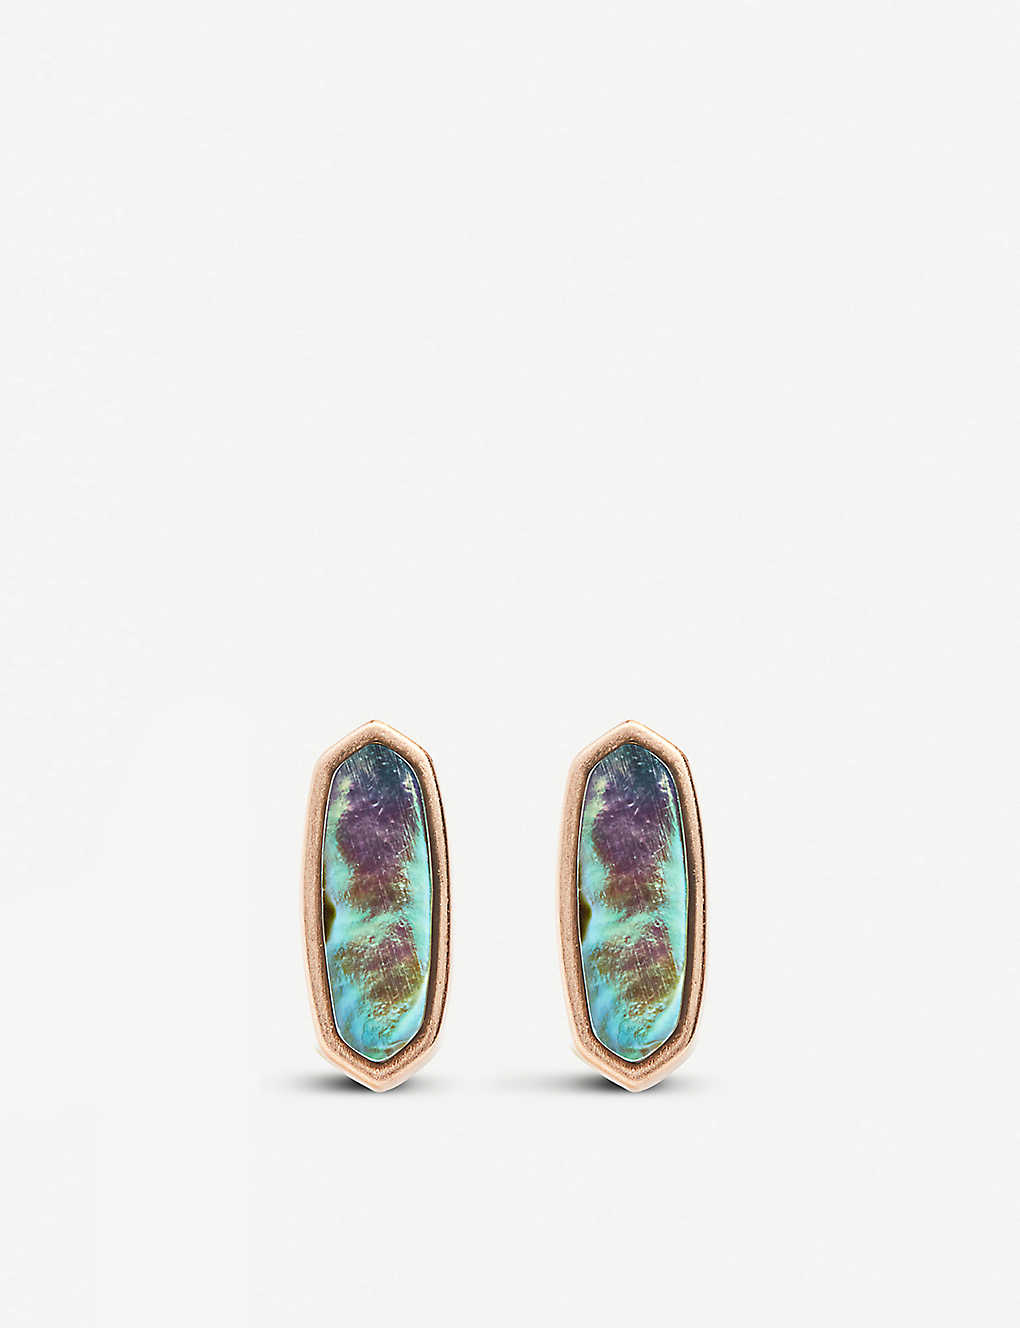 93949f4e5 KENDRA SCOTT Mae 14ct rose-gold plated stud earrings in abalone shell